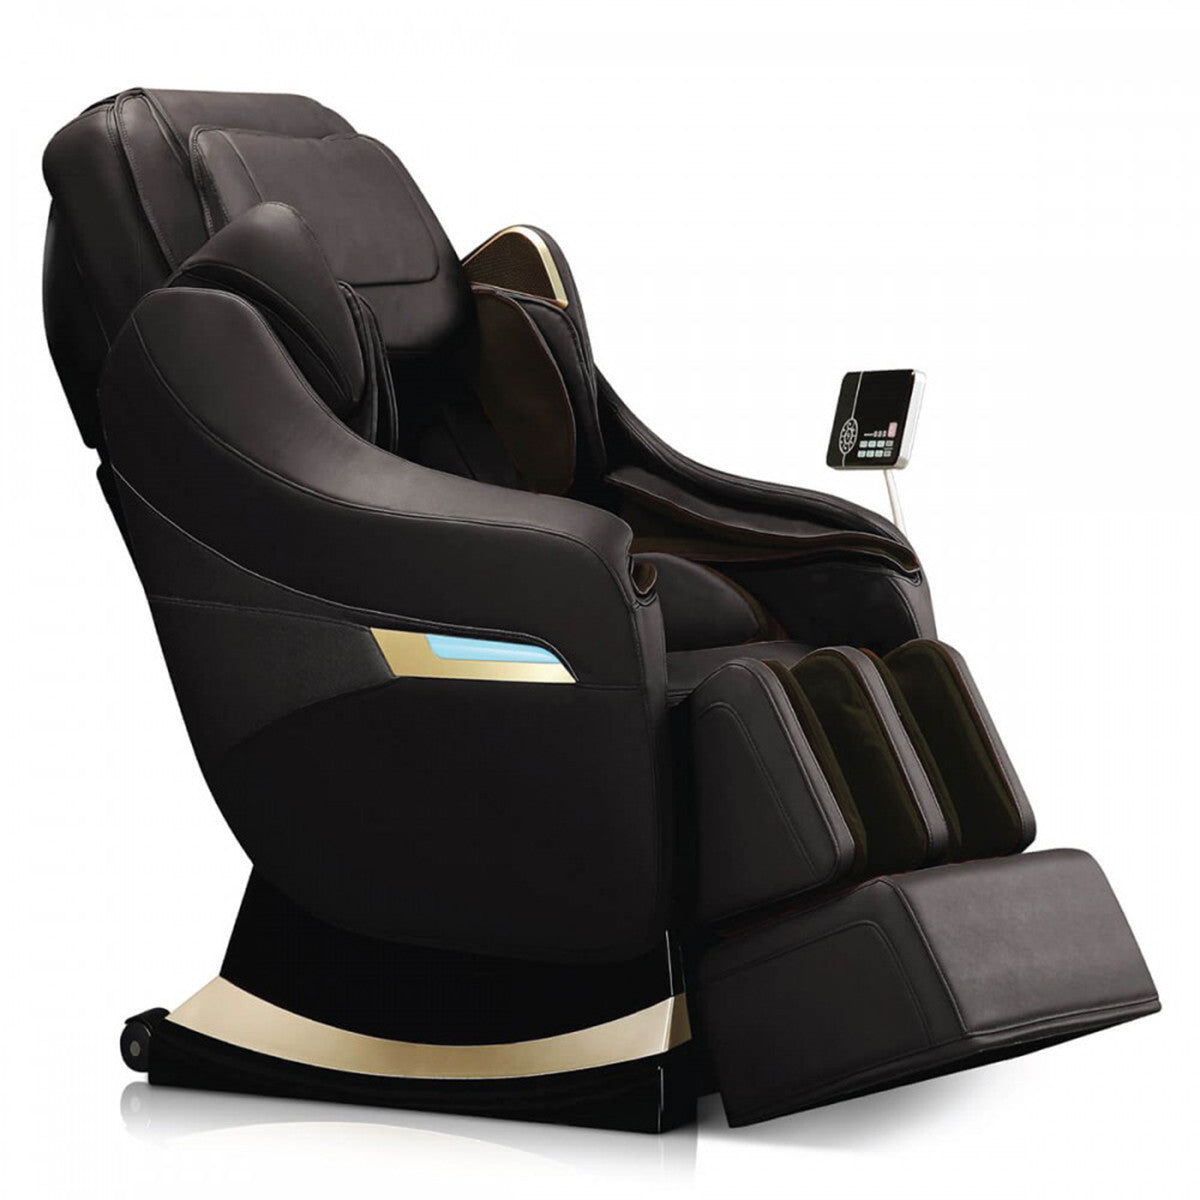 sale on air heat image best cushion chair neck new shiatsu brookstone shoulder massager costco for sharper sport full massage of and price with ijoy size chairs earthlite